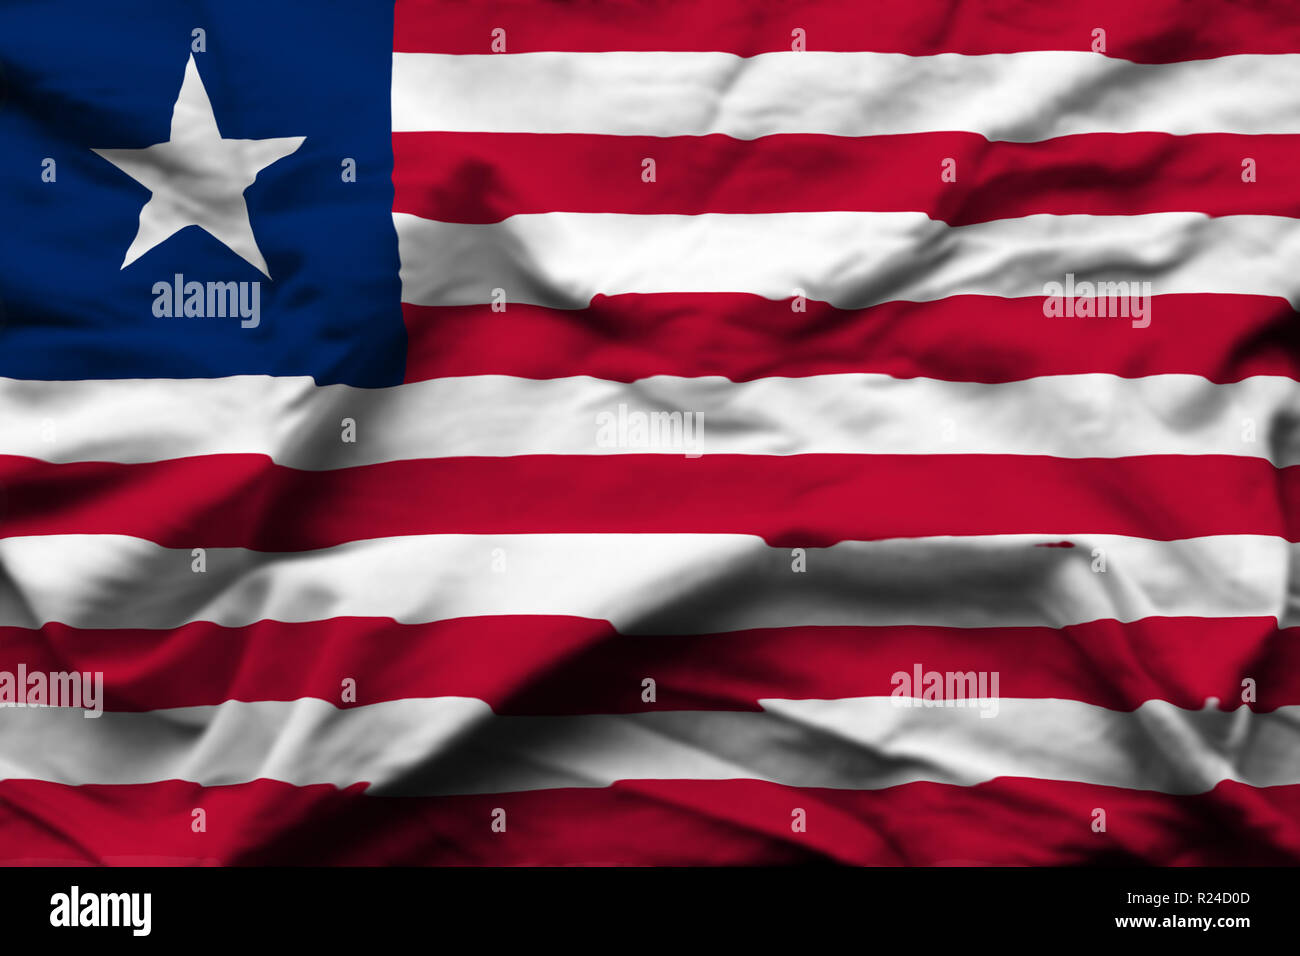 Liberia 3D wrinkled flag illustration. Usable for background and texture. - Stock Image